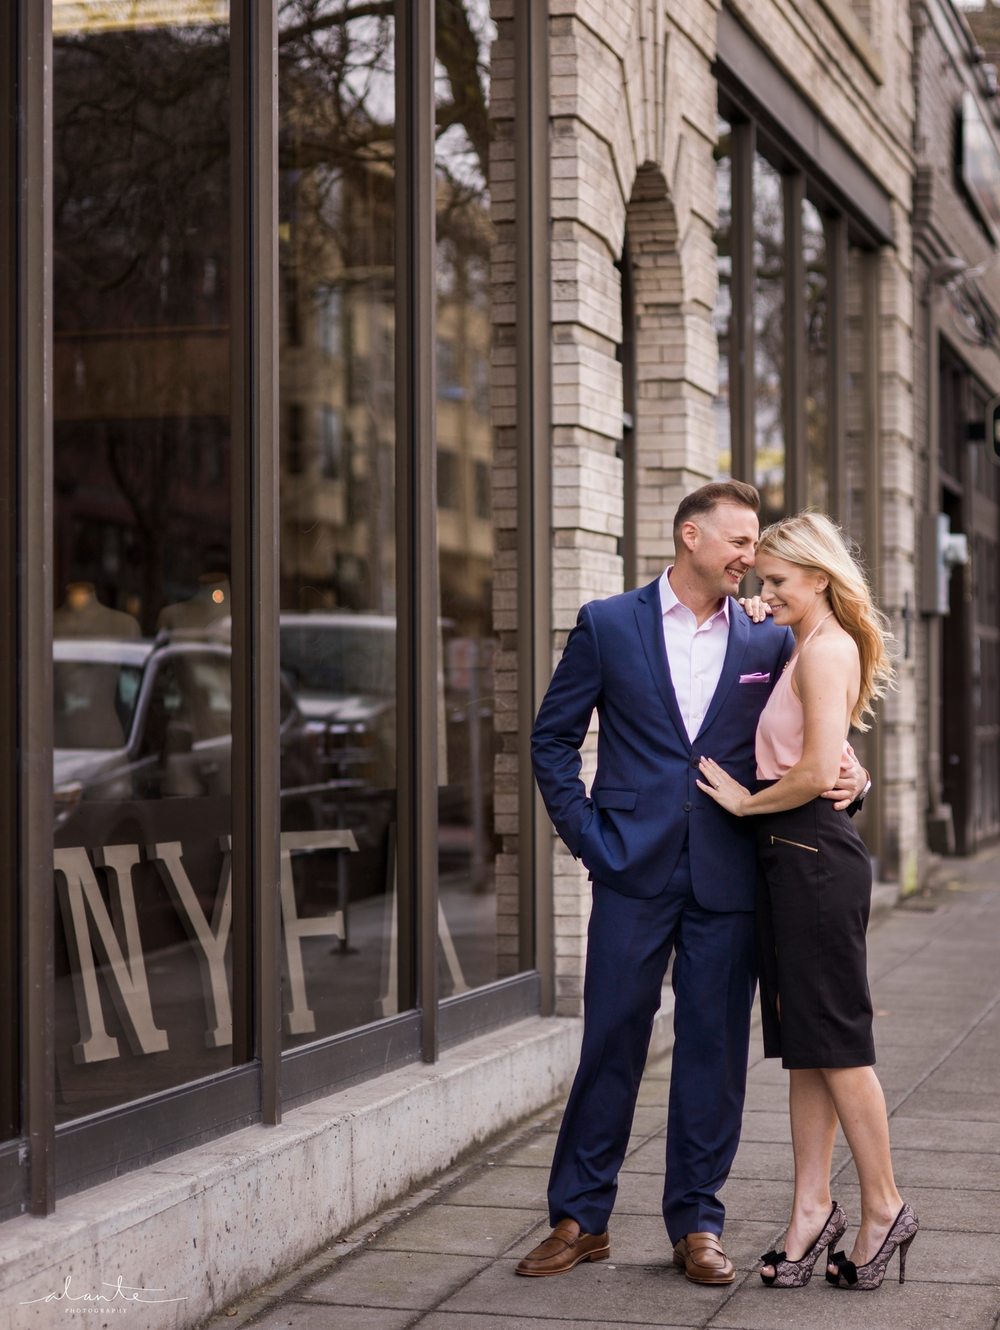 http://www.alantephotography.com | Ballard Engagement Session | Alante Photography